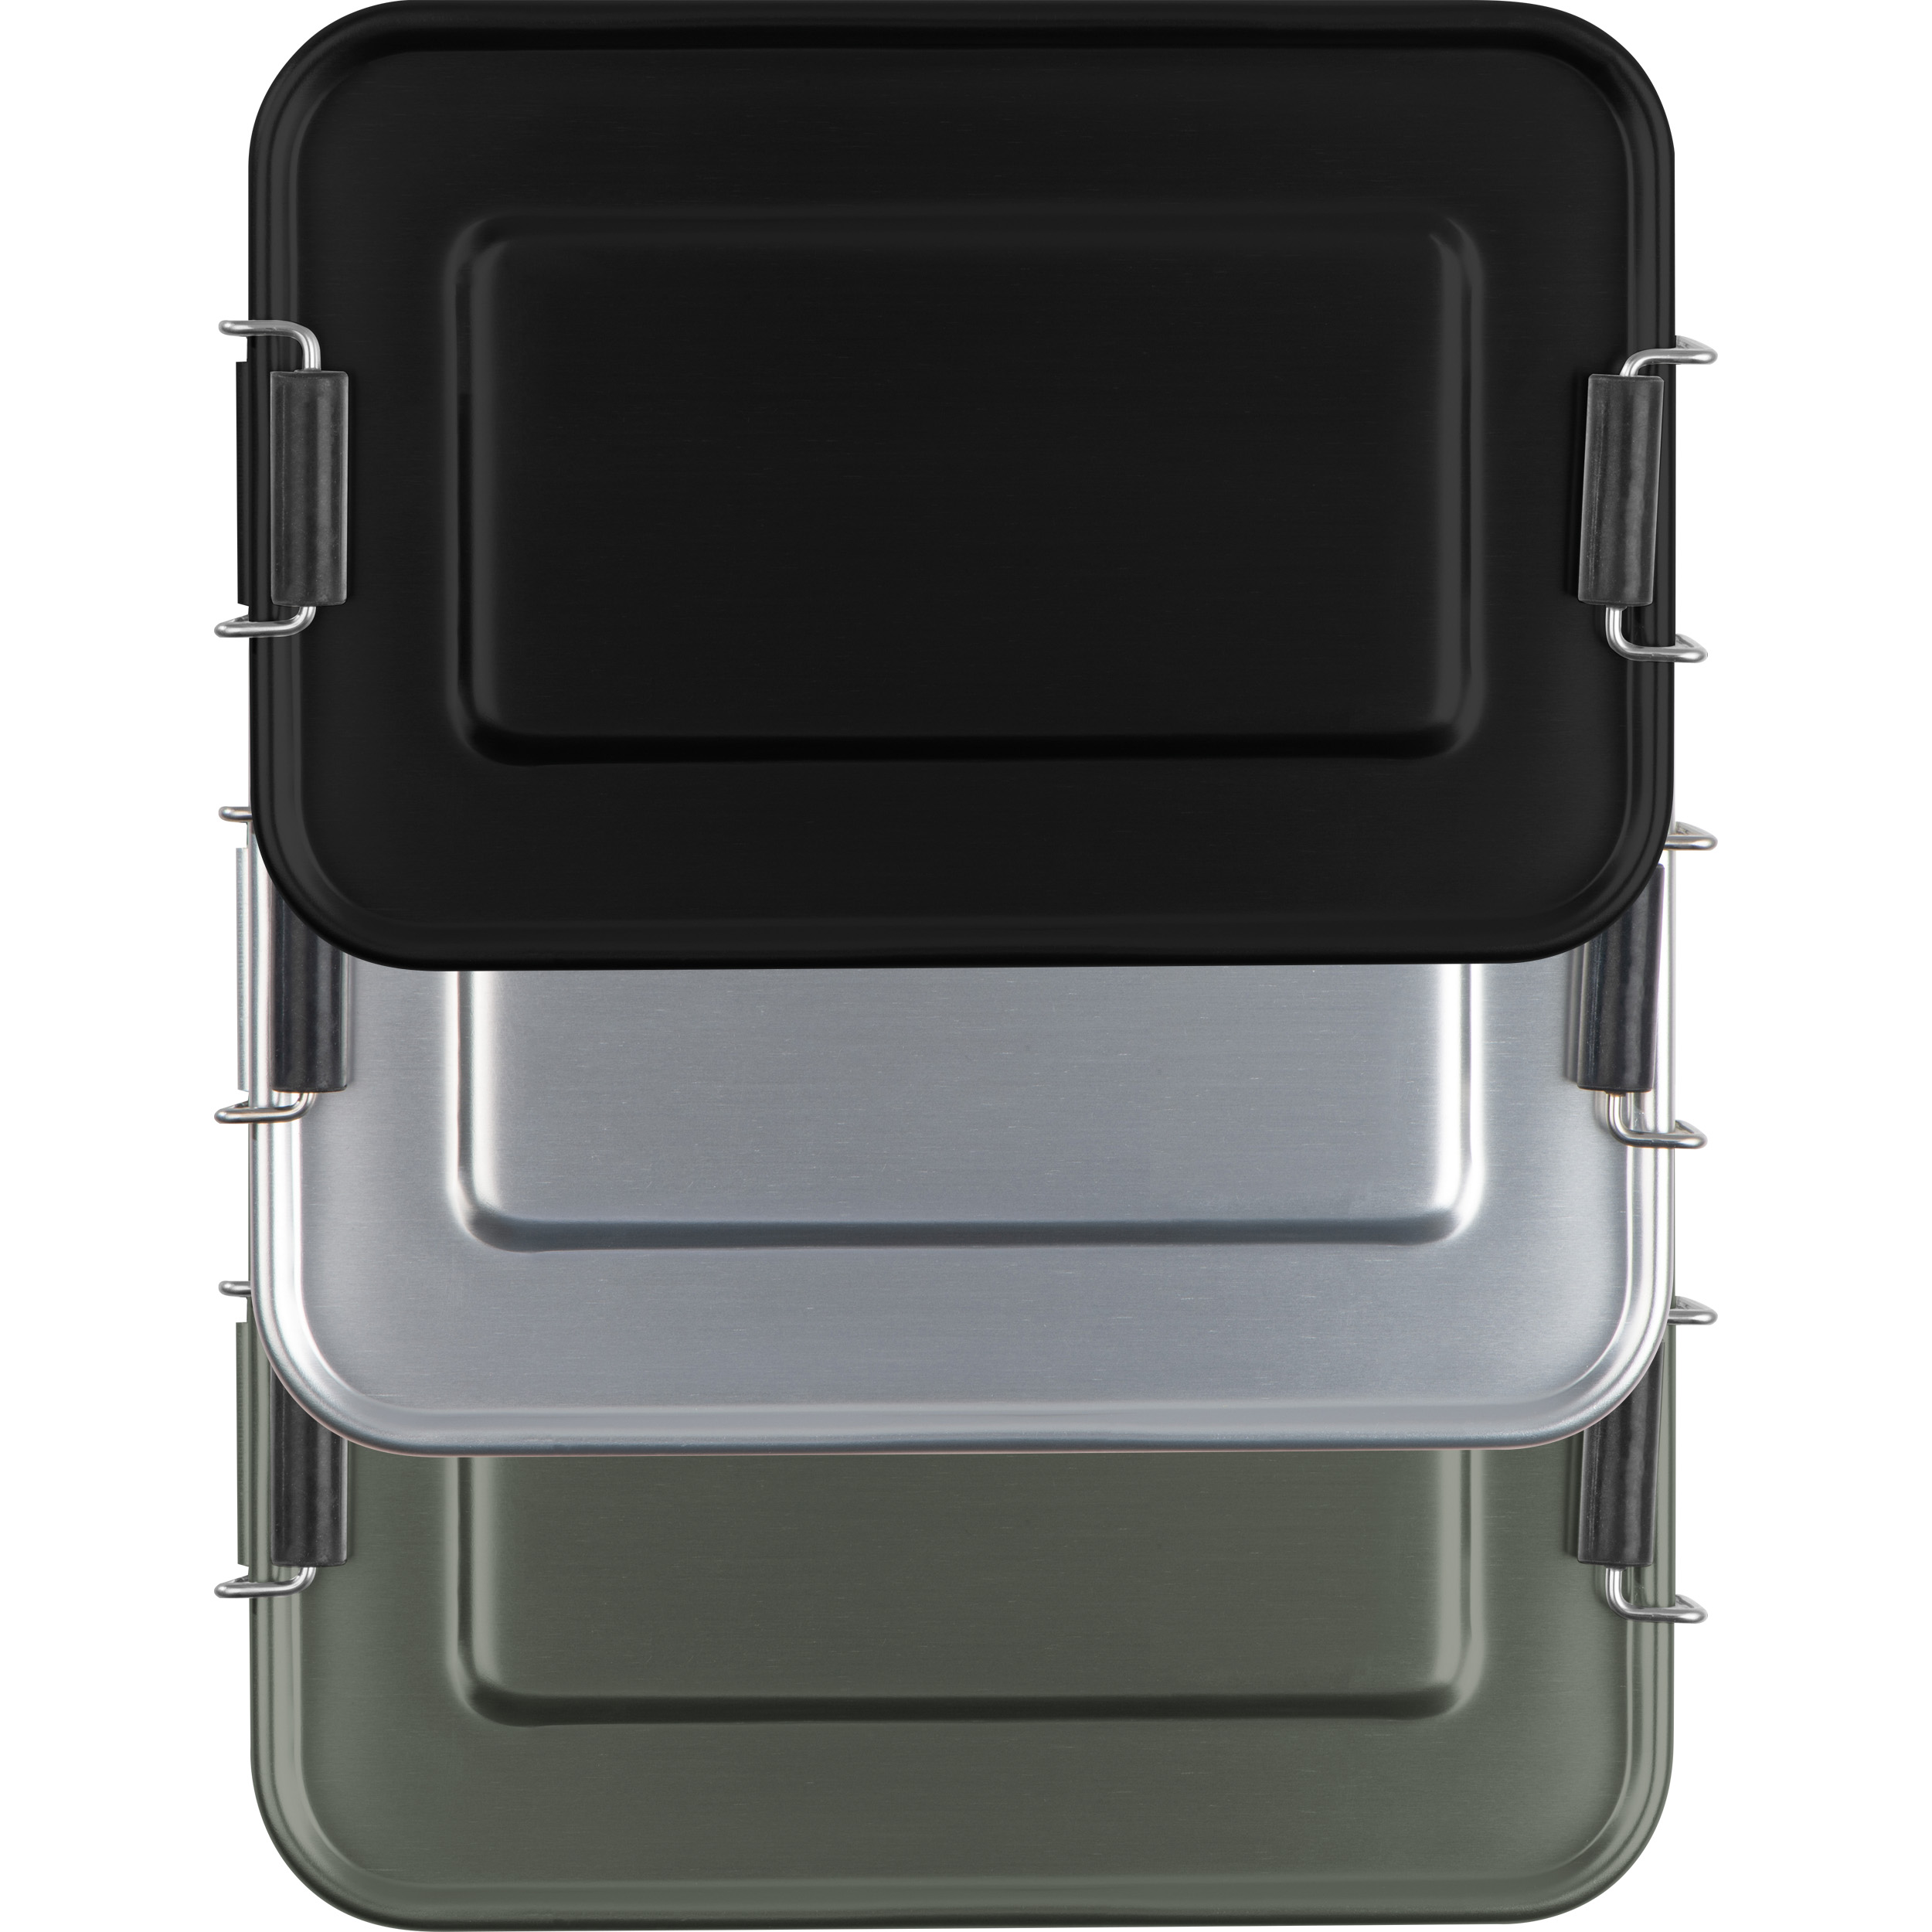 Aluminum lunch box with closure